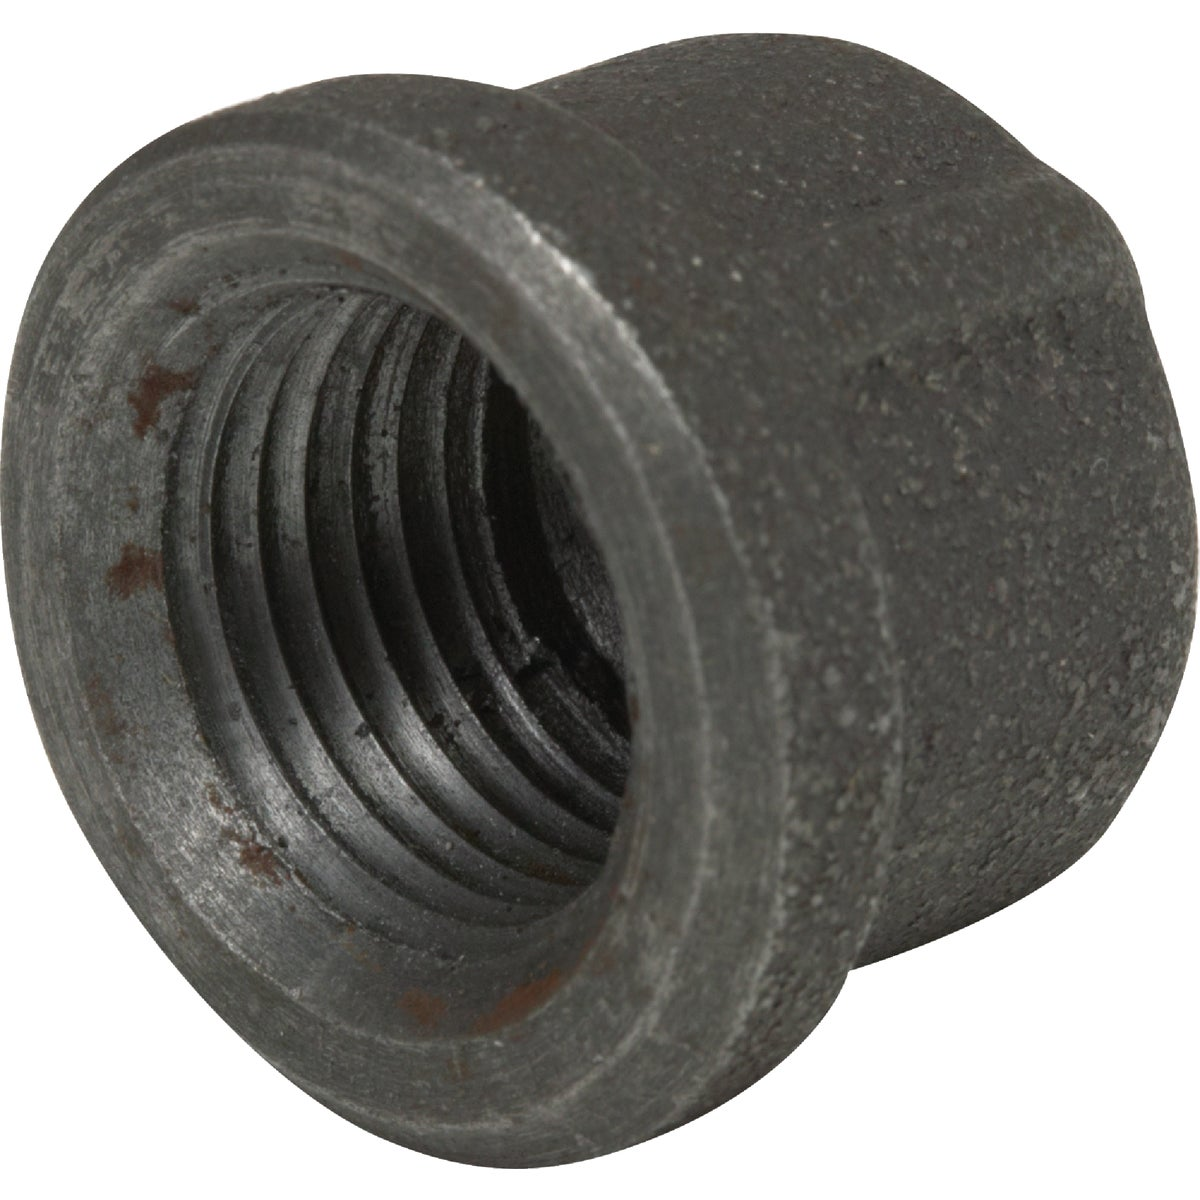 "1/2"" BLK CAP - 8700132205 by Anvil International"